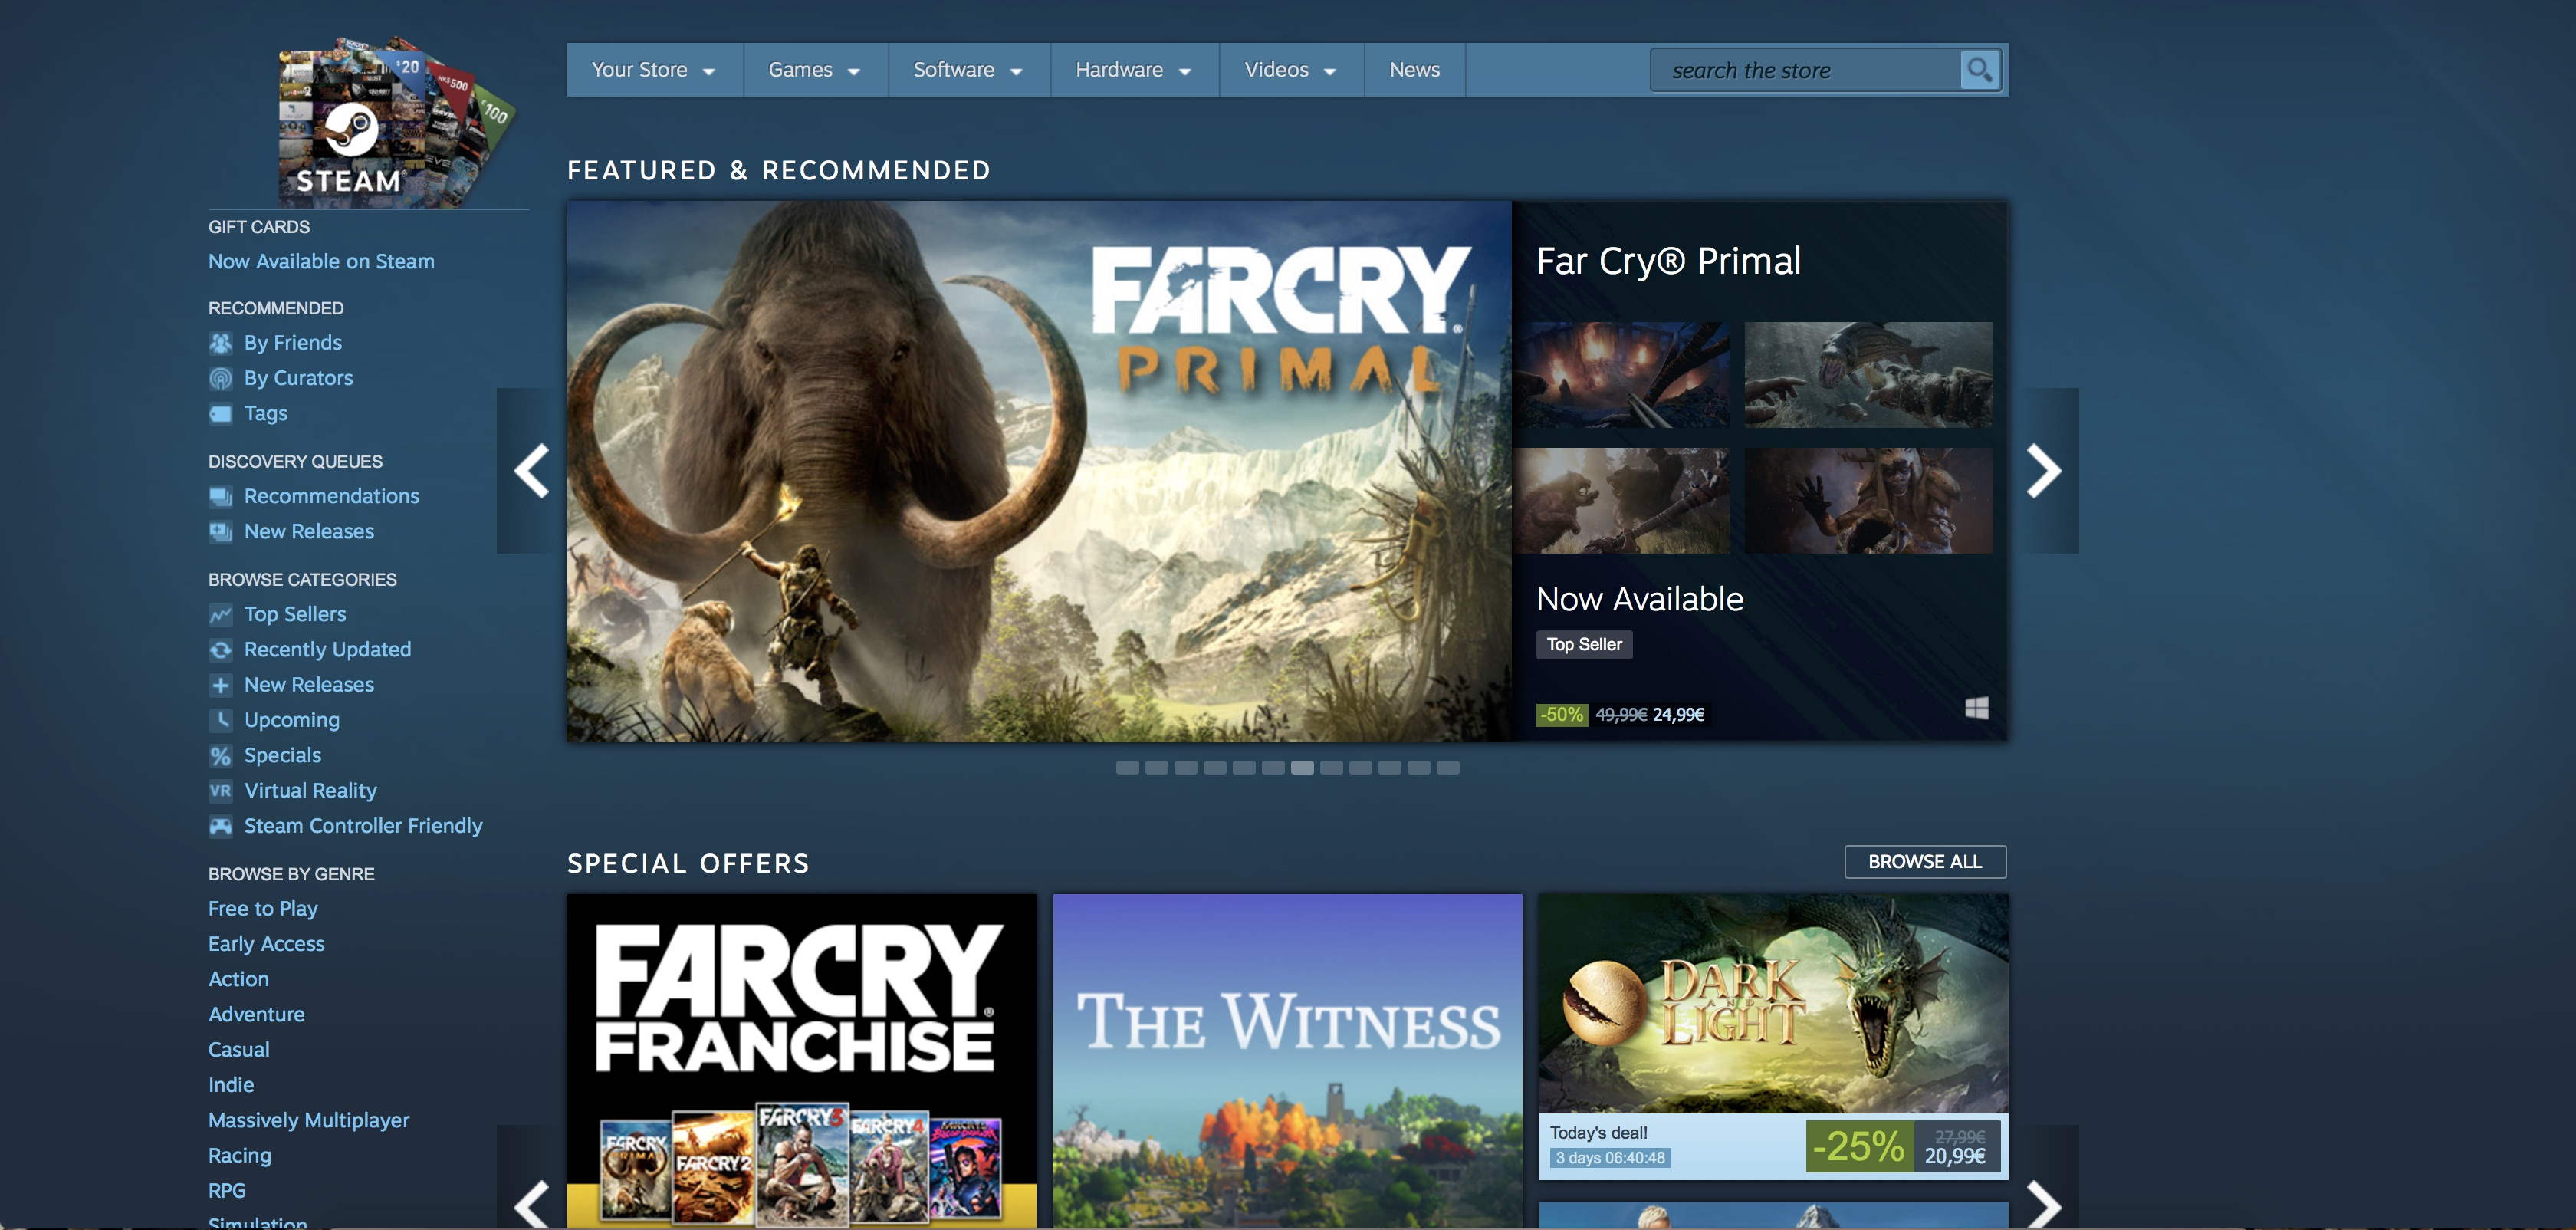 Steam for Linux Client Finally Receives Support for 4K Monitors